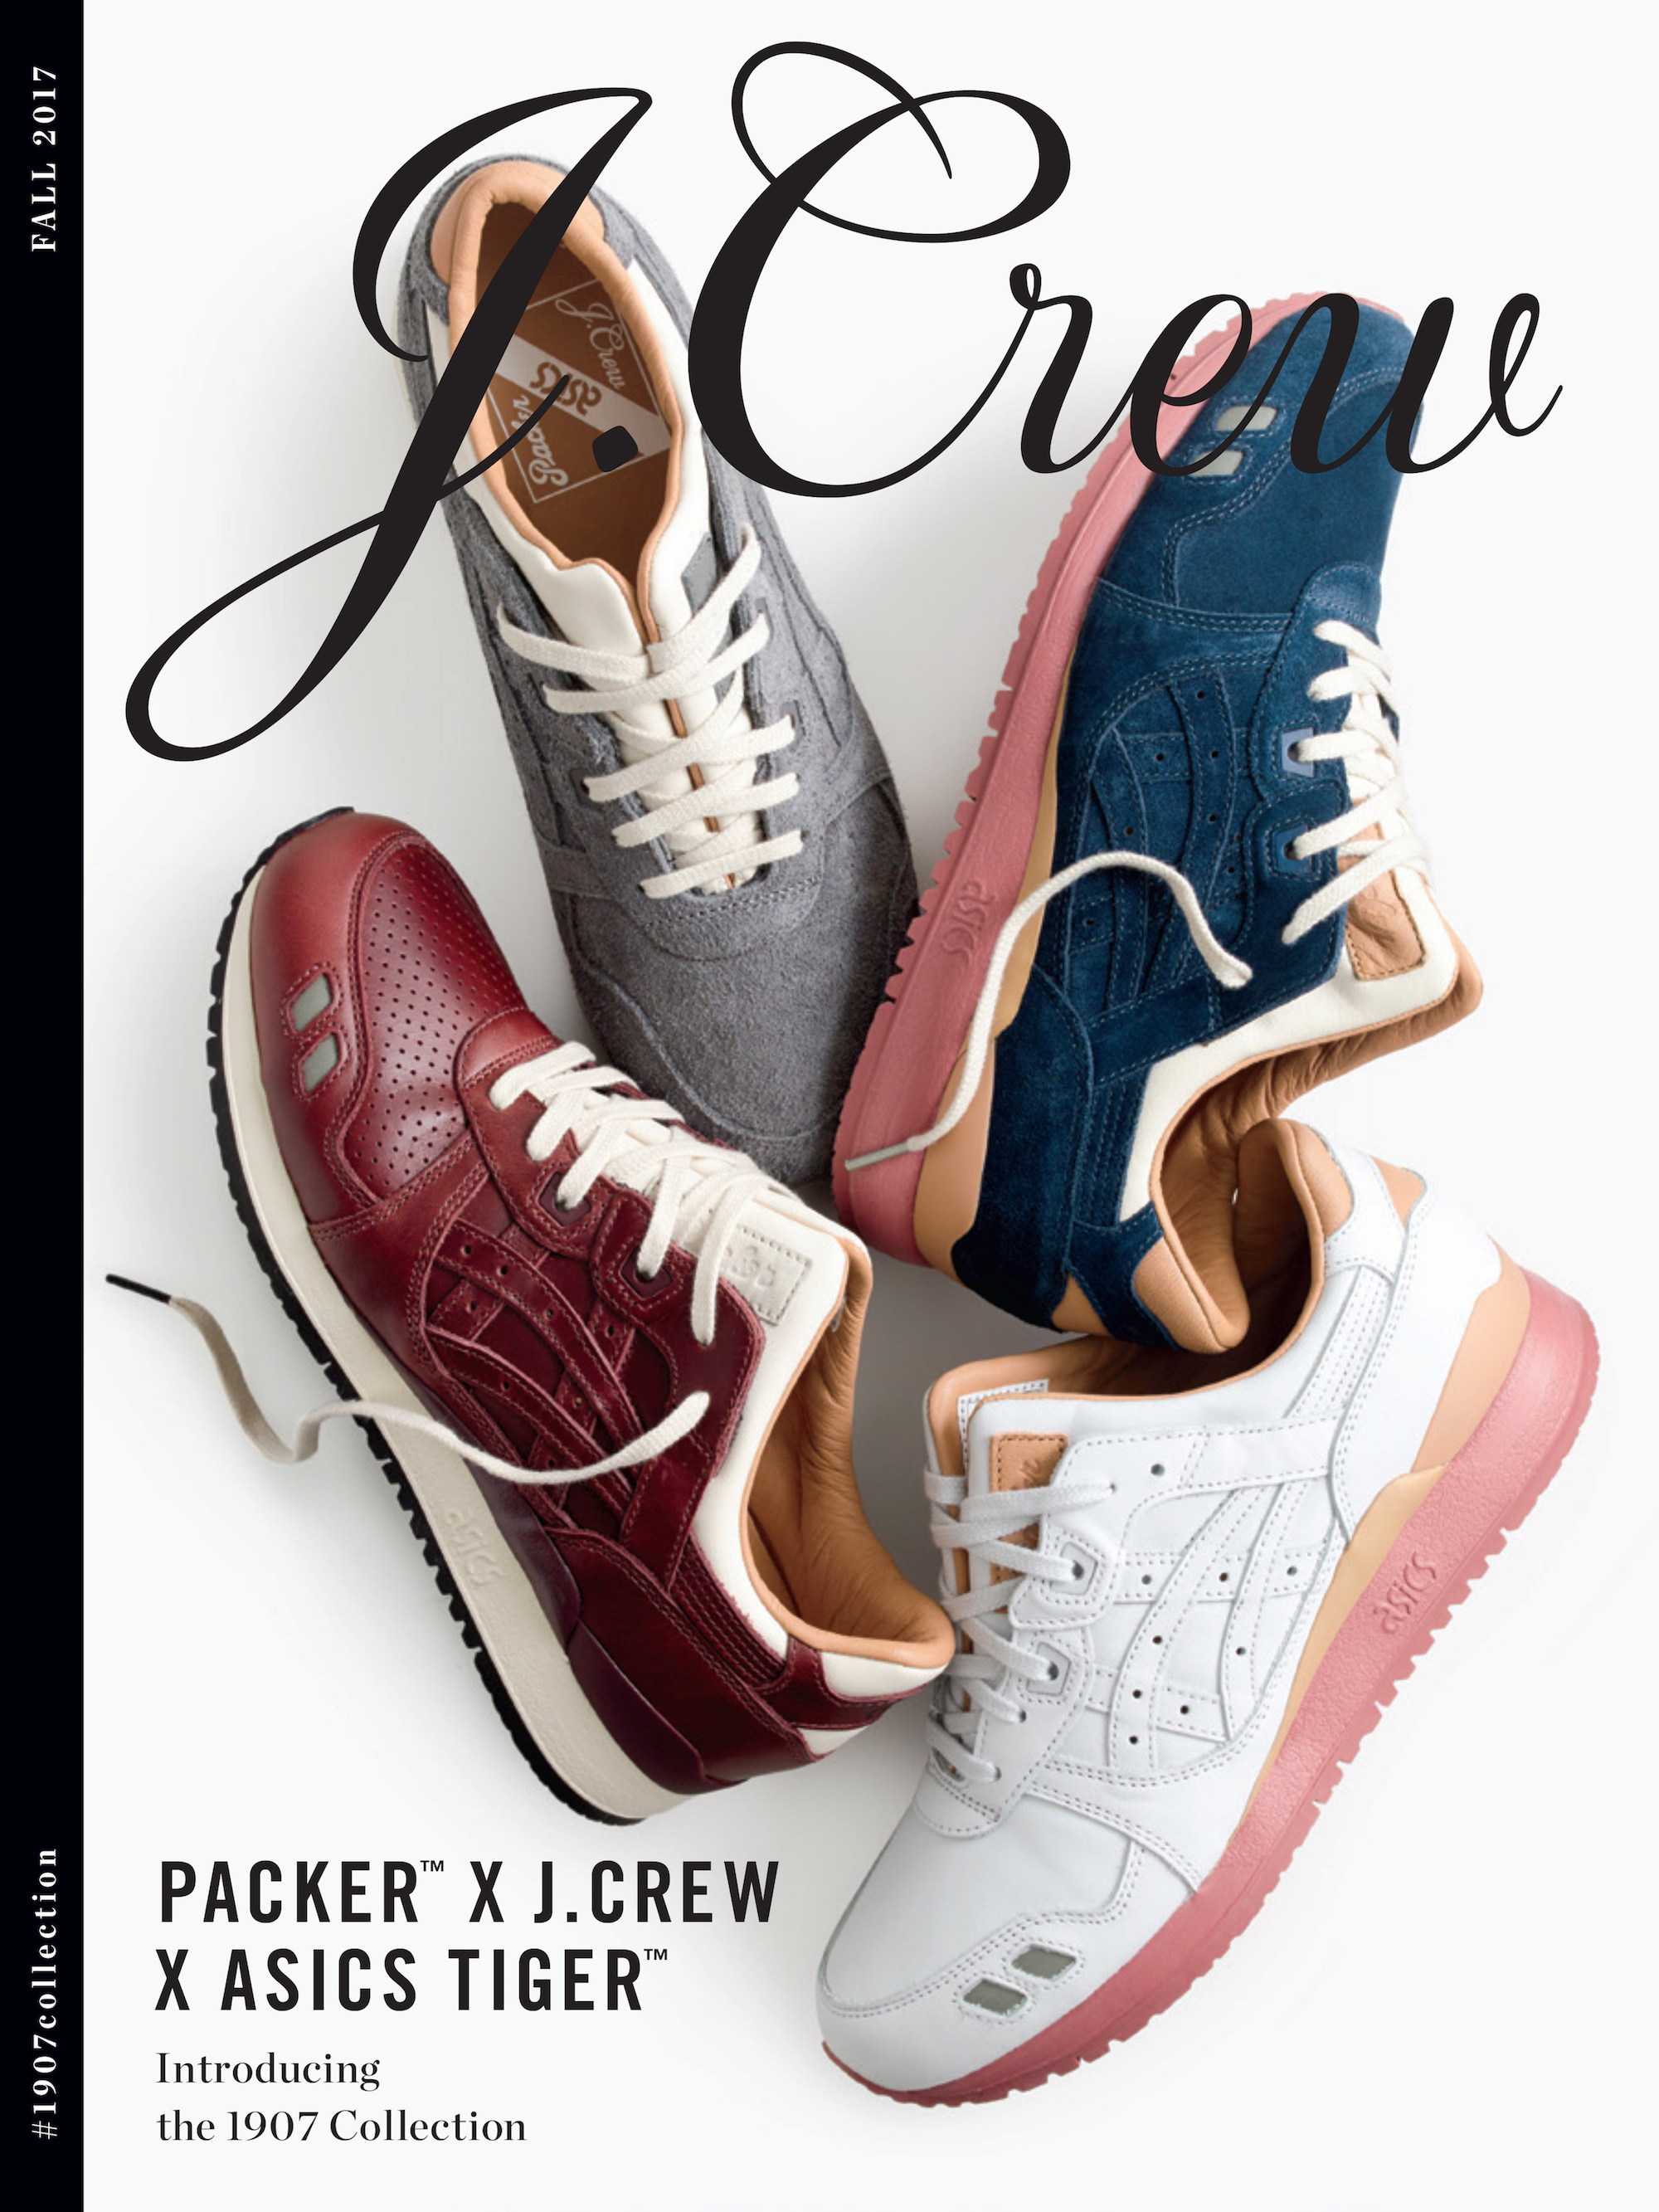 packer shoes jcrew asics tiger 1907 collection 2